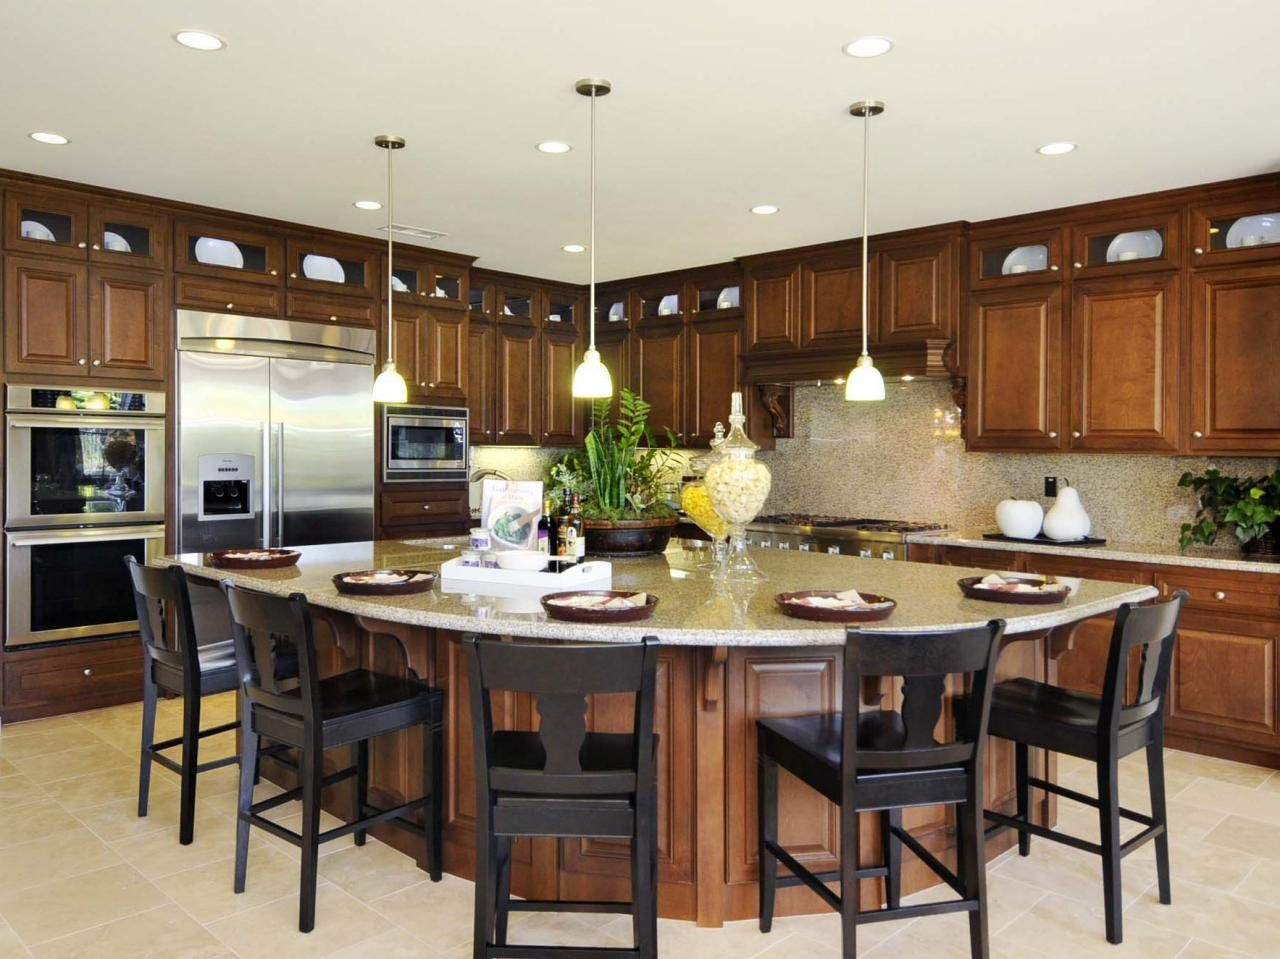 Attractive Kitchen Island Design Ideas: Pictures, Options U0026 Tips | Kitchen Designs   Choose  Kitchen Layouts U0026 Remodeling Materials | HGTV